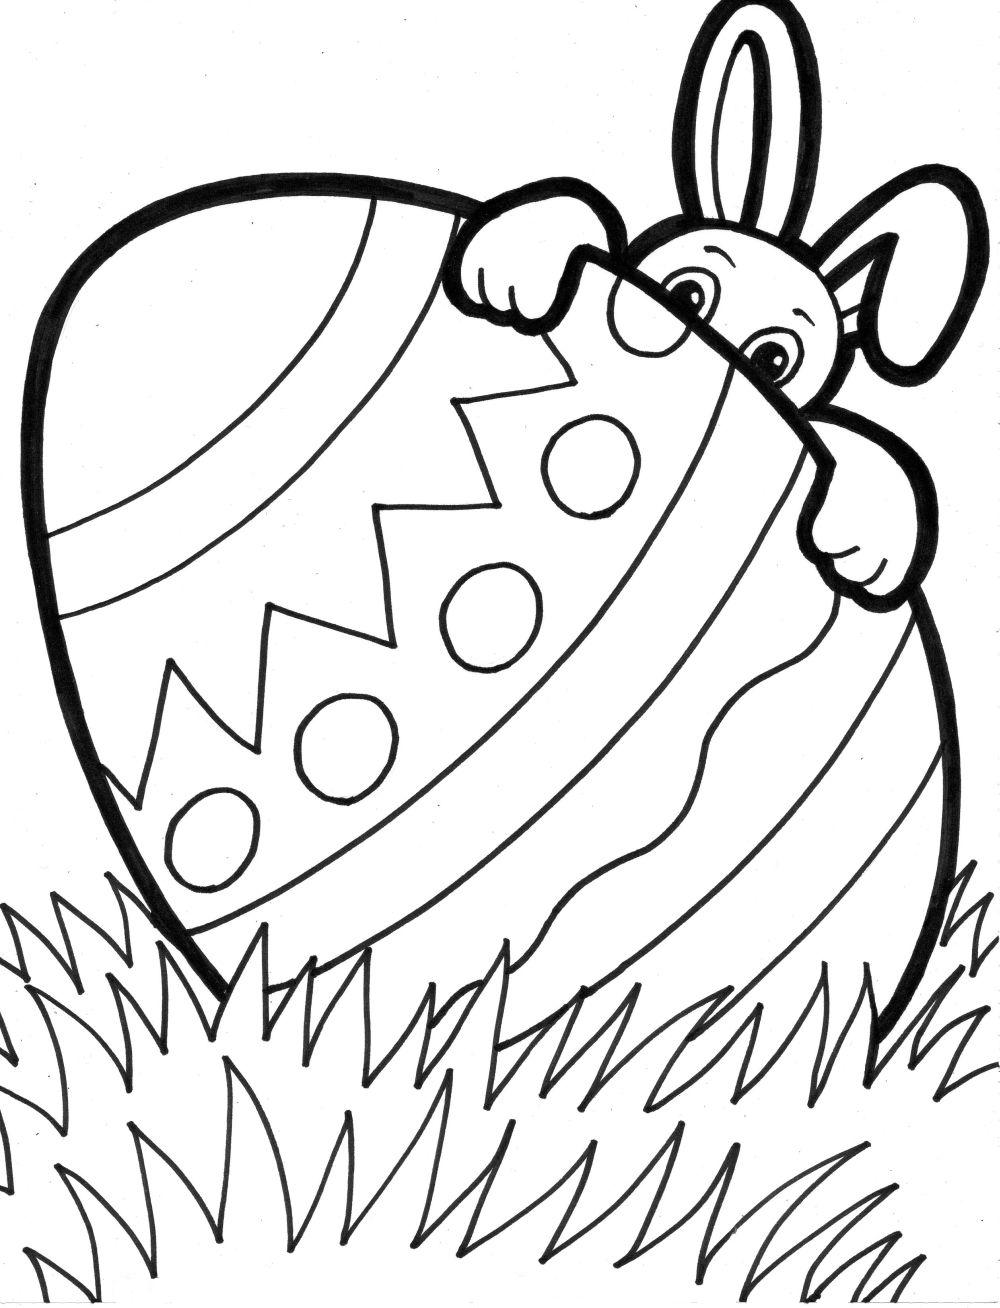 coloring book pages for easter - photo#41